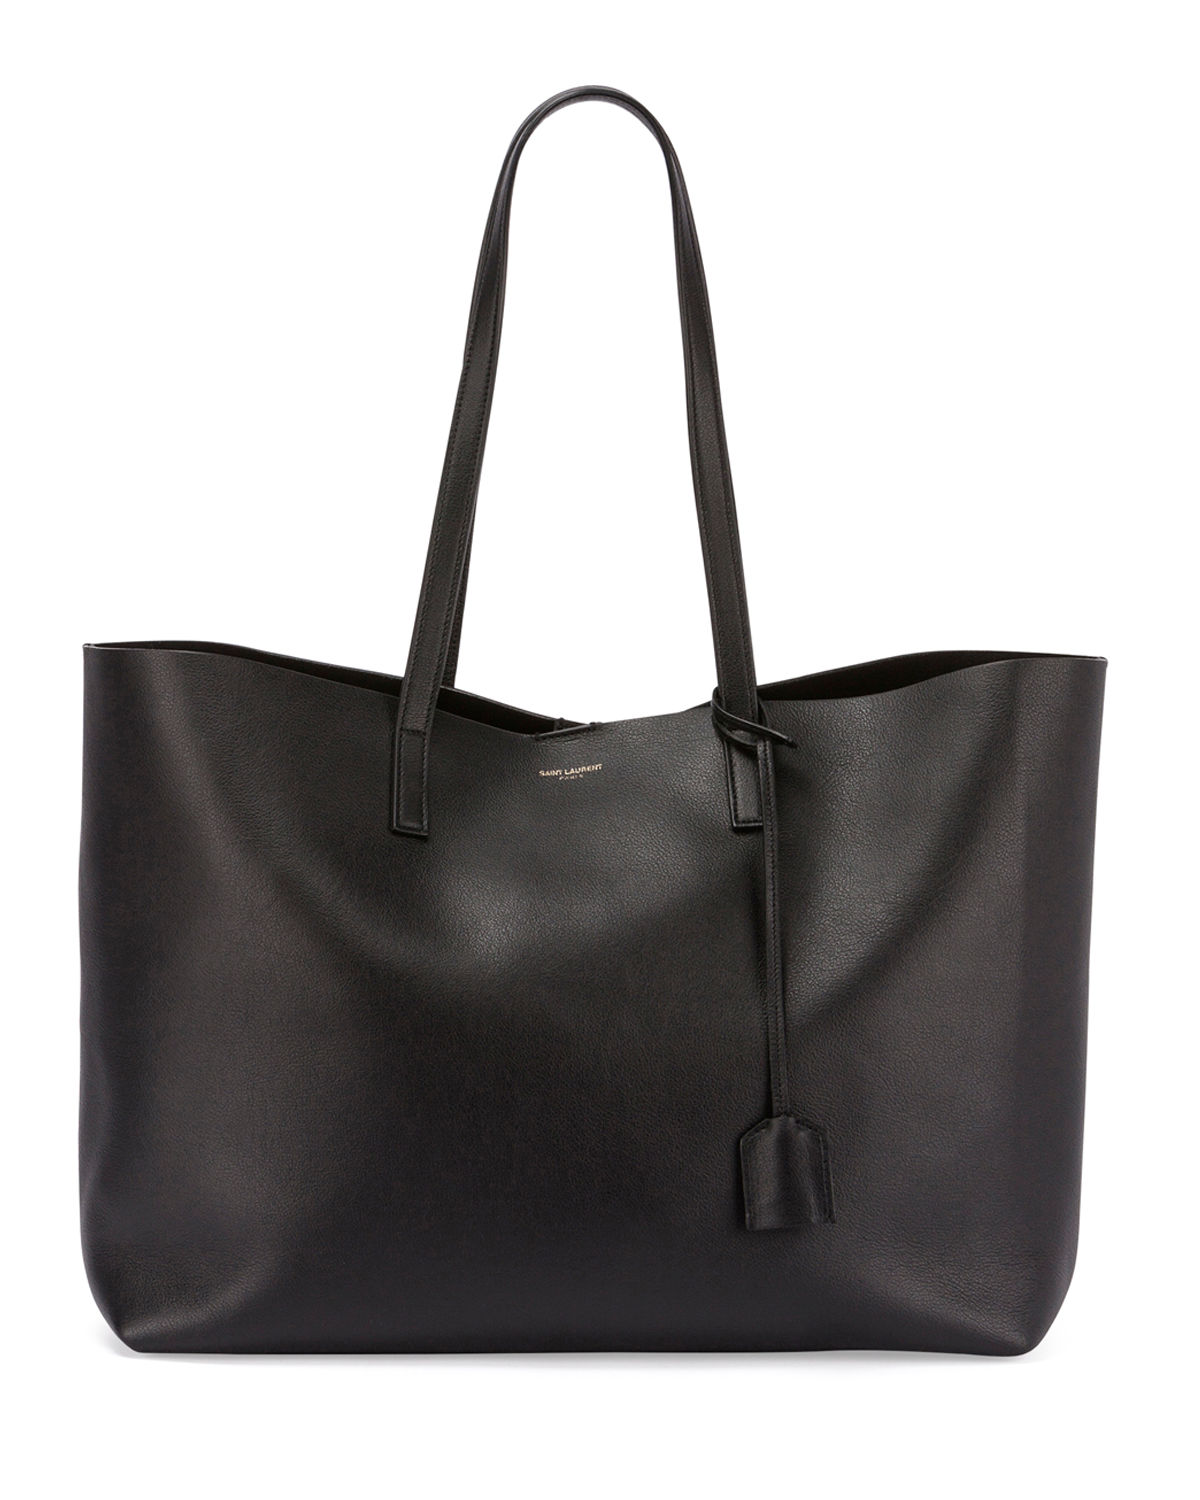 6fca7a4c3fa Saint Laurent East West Shopping Tote Bag | Neiman Marcus